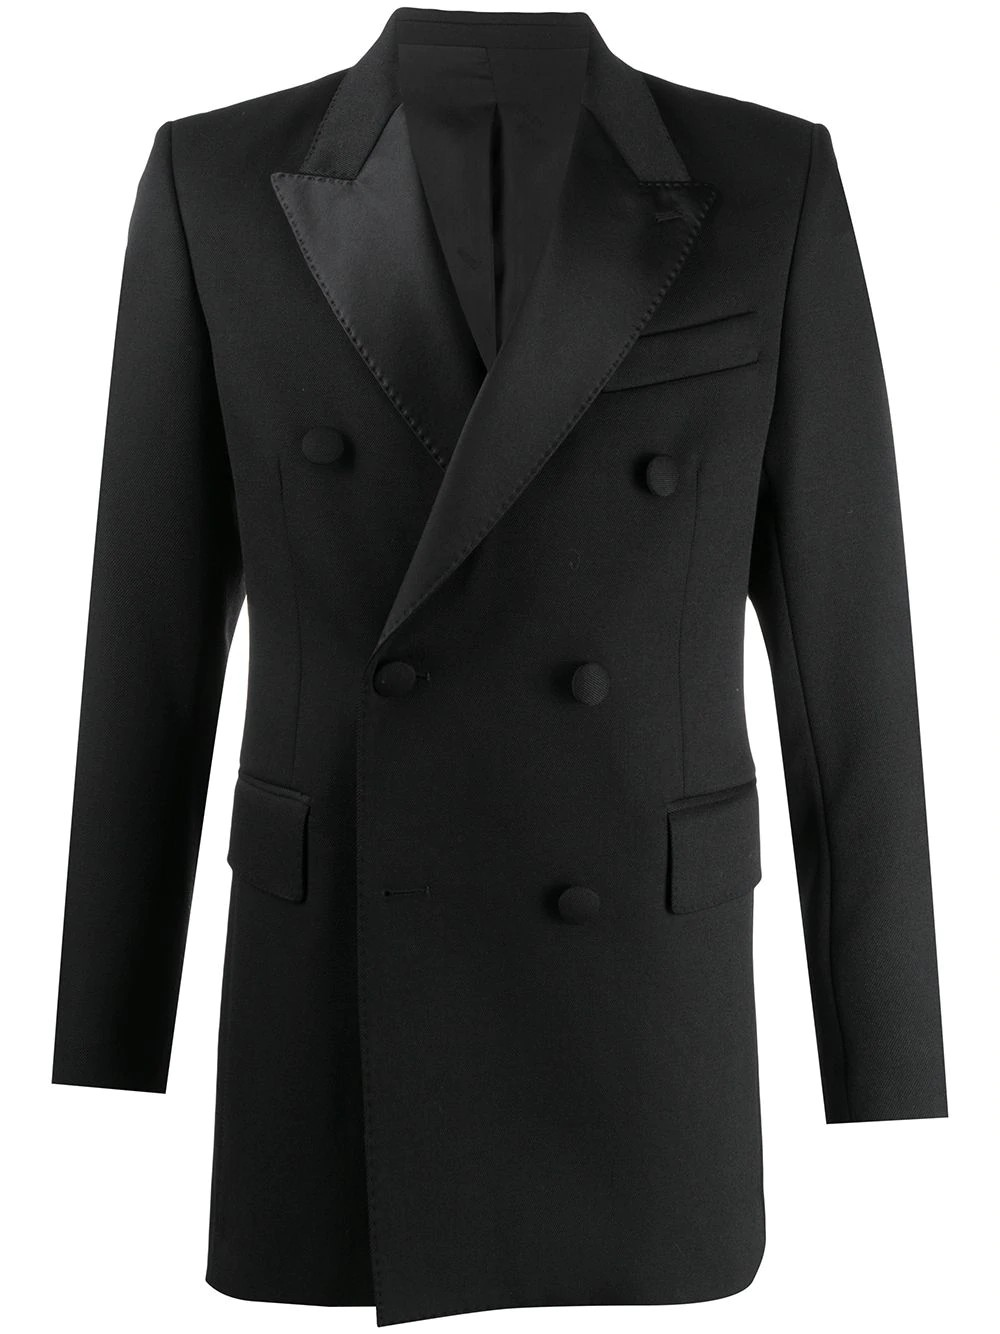 MEN DOUBLE BREASTED LINED SMOCKING JACKET